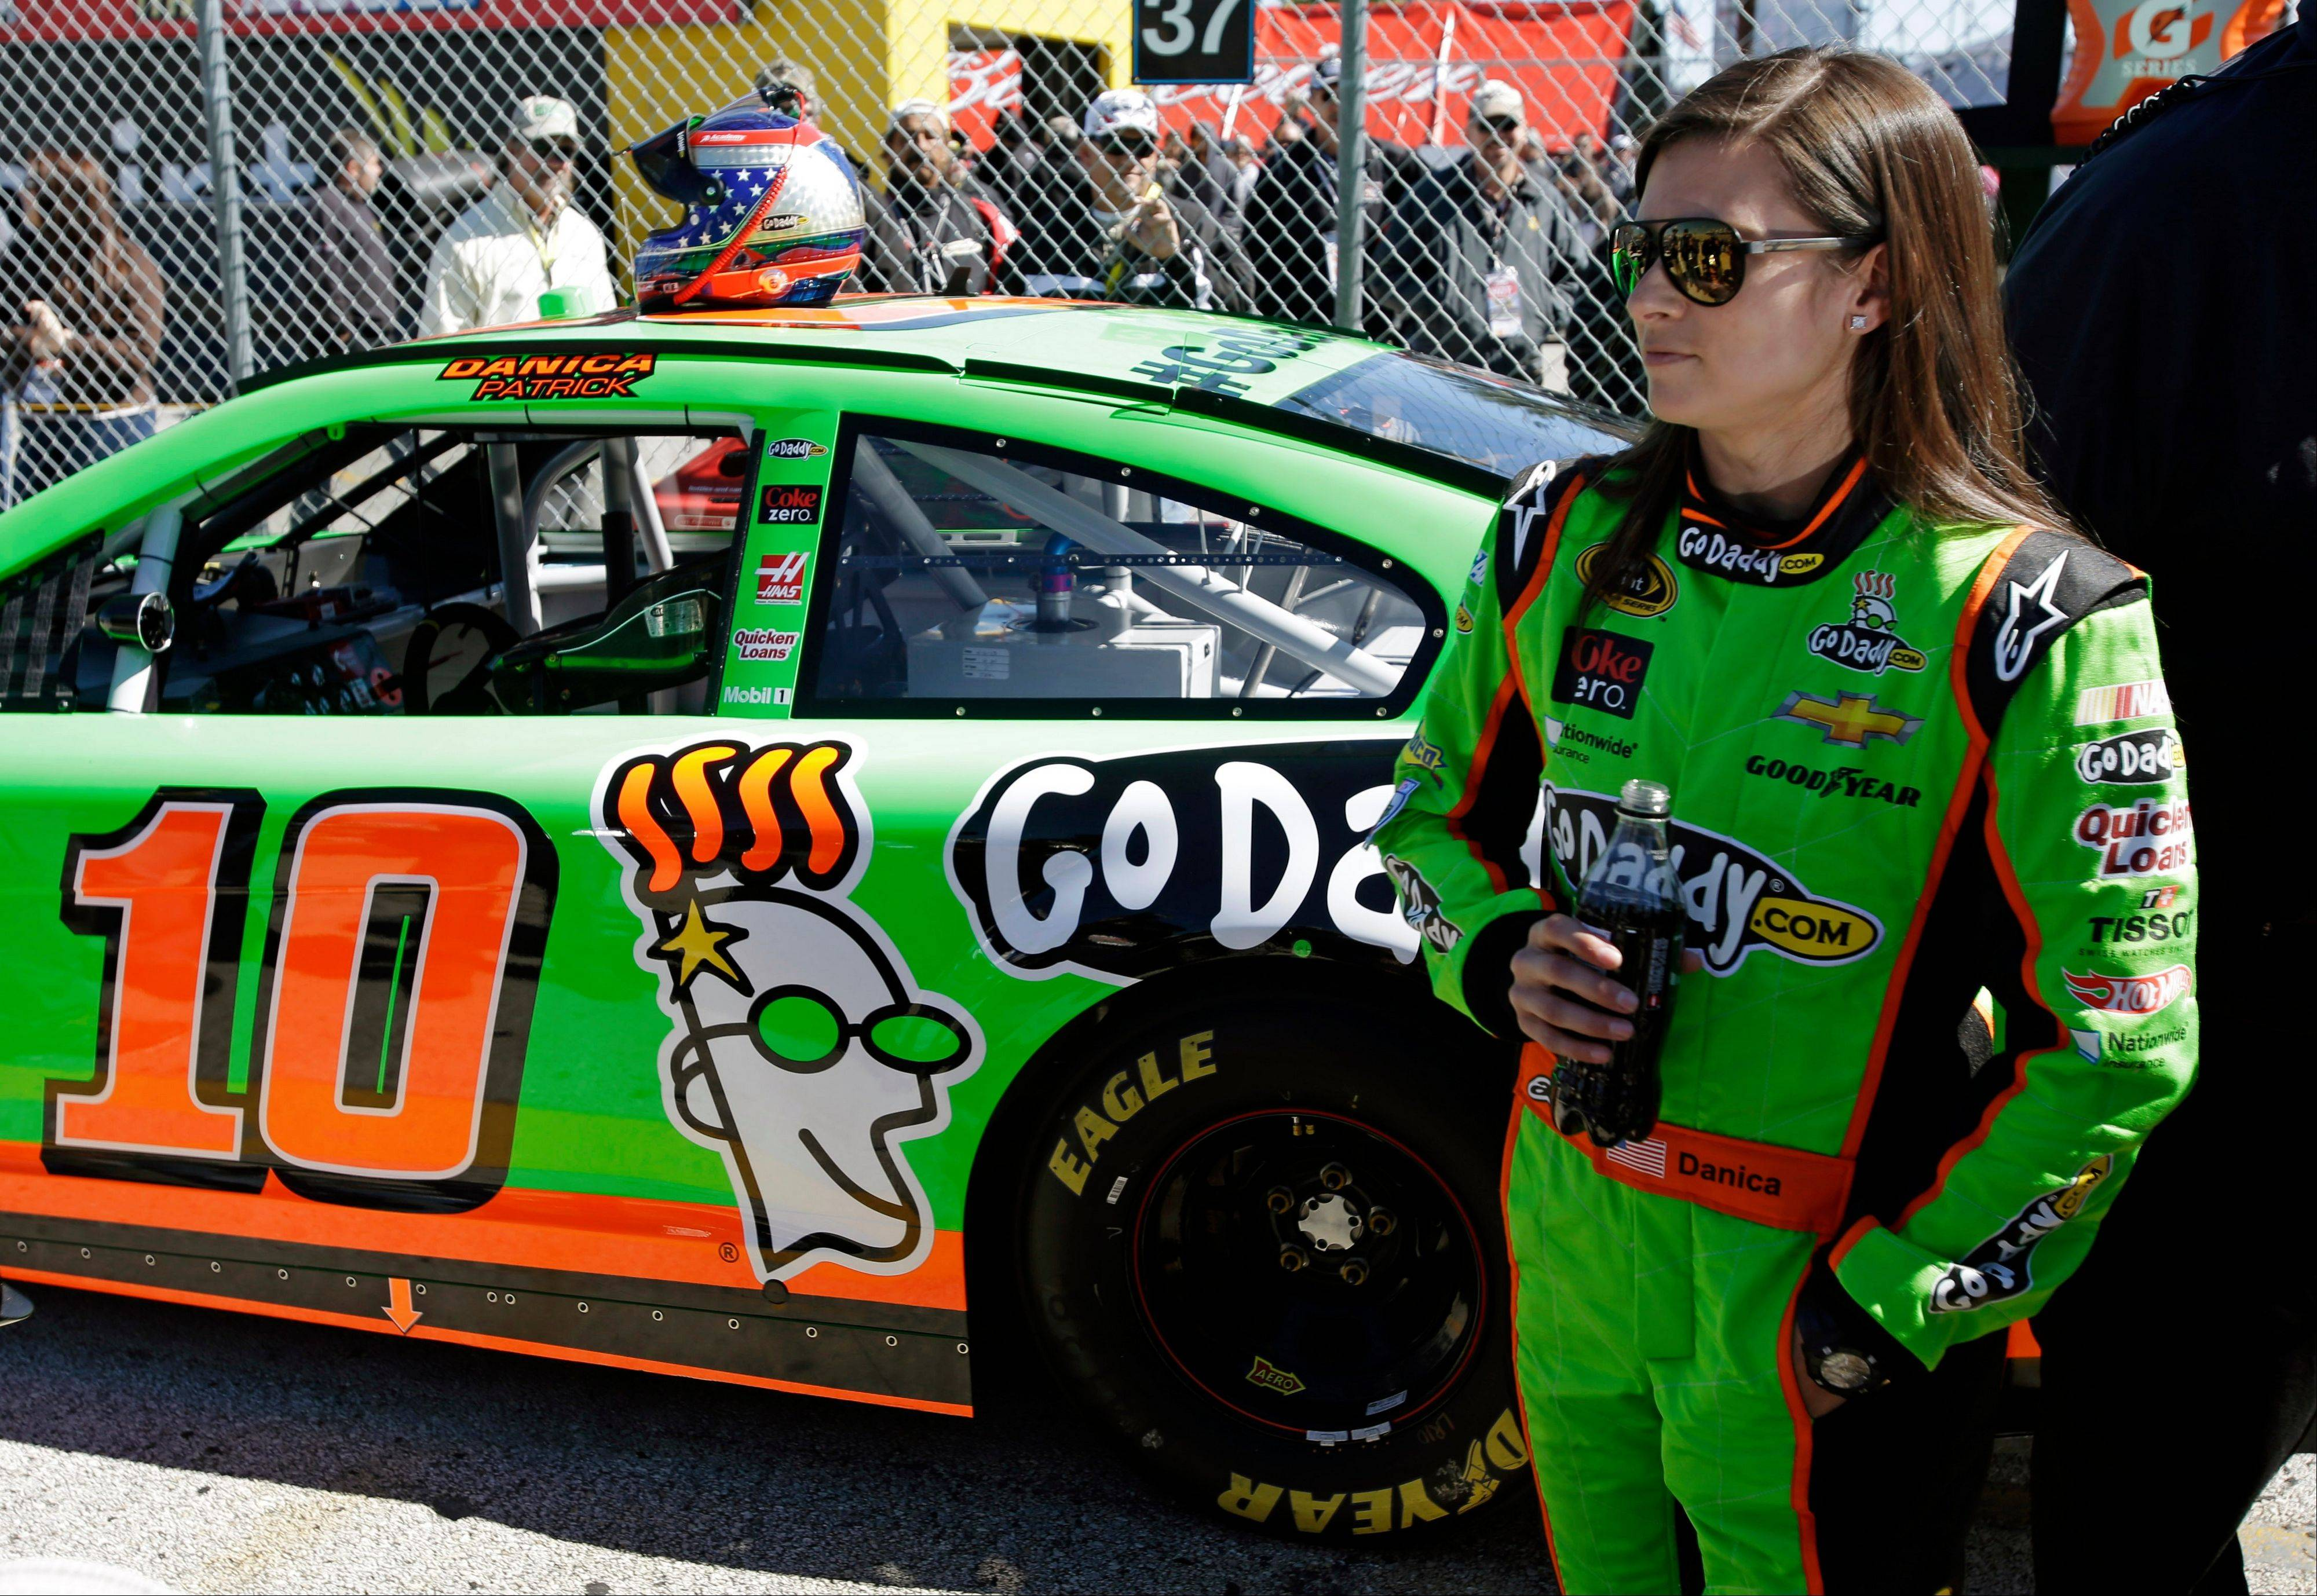 Danica Patrick stands by her car after qualifying for the NASCAR Daytona 500 Sprint Cup Series auto race at Daytona International Speedway, Sunday, in Daytona Beach, Fla. Patrick won the pole, becoming the first woman to secure the top spot for any Sprint Cup race.